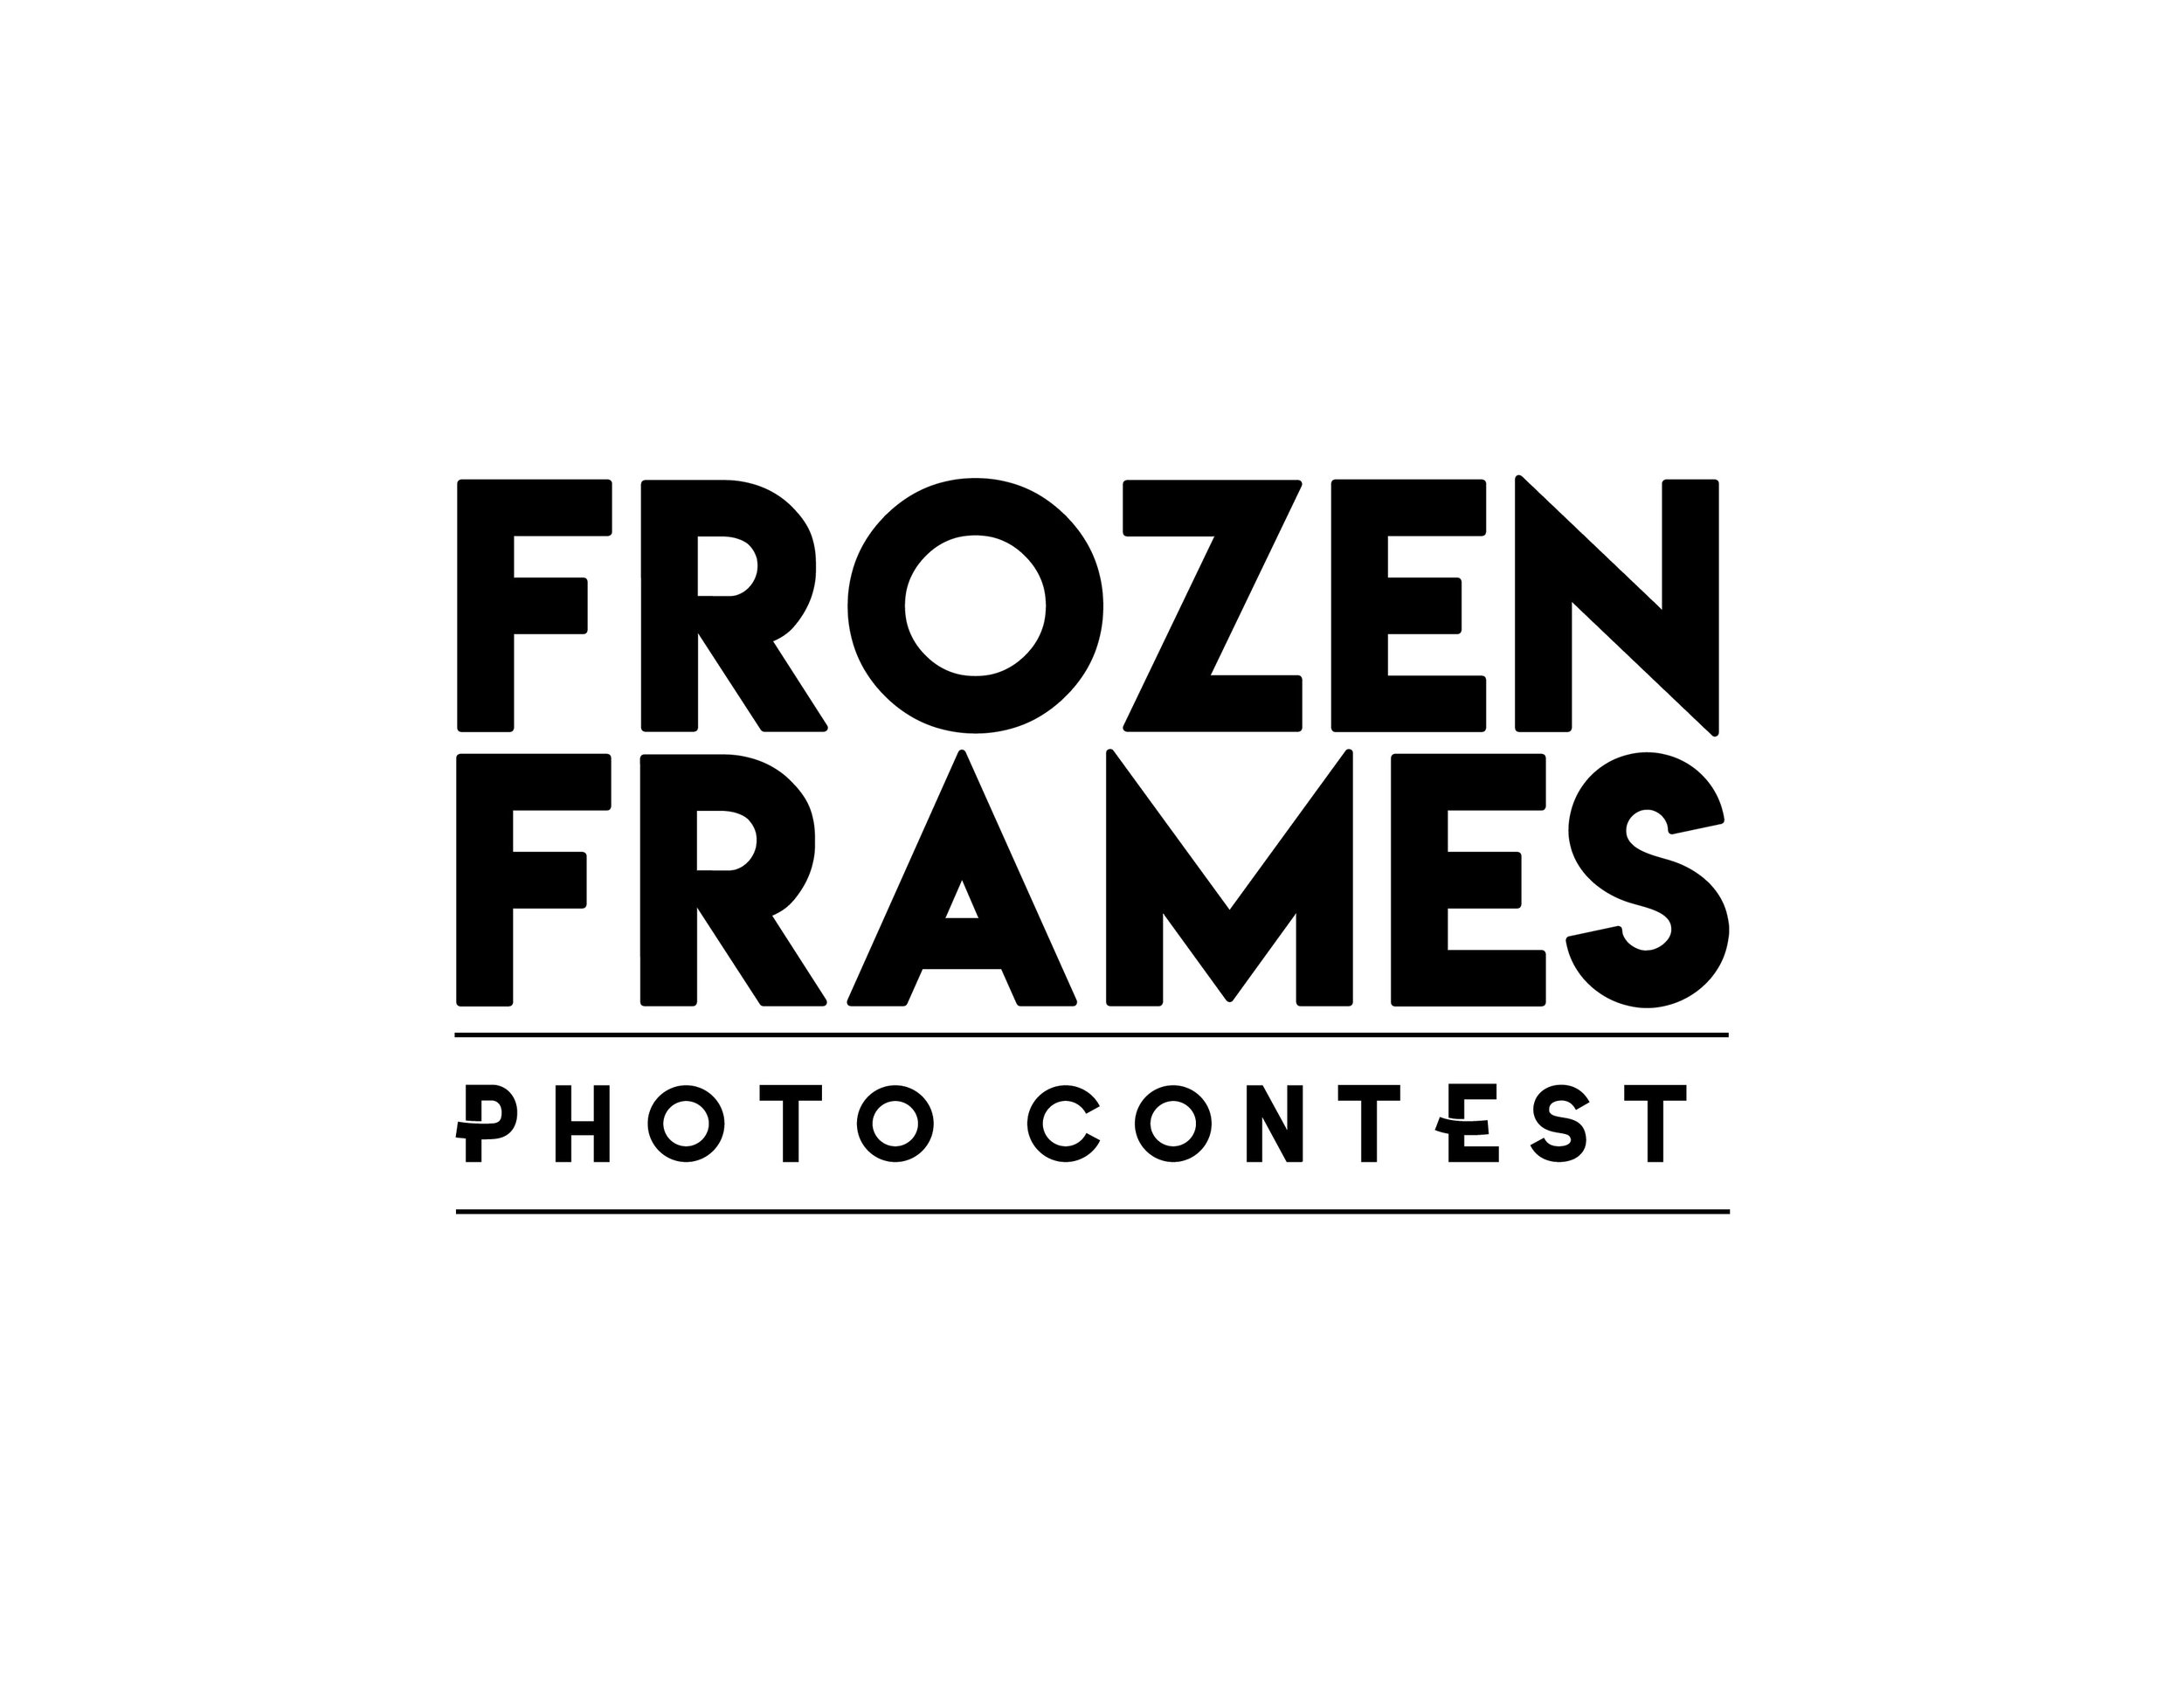 frozen frames photo contest strip blk.jpg